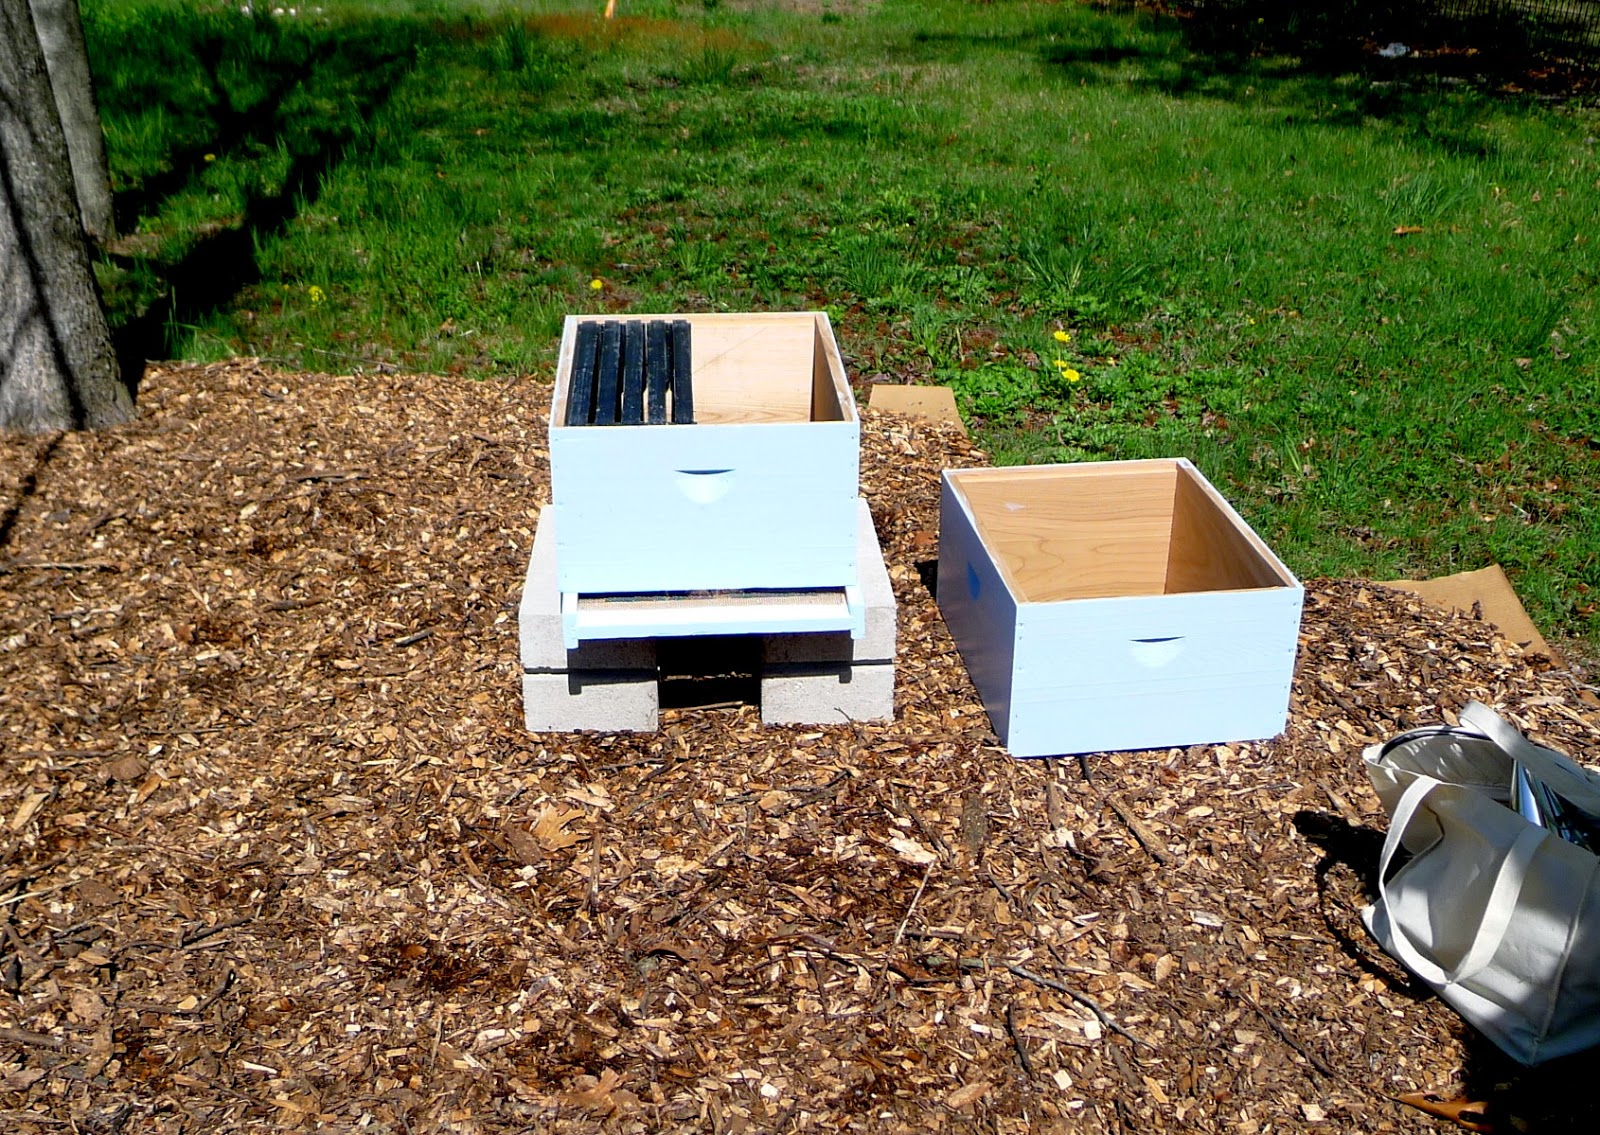 installing a nuc of bees, master gardeners, urban farming